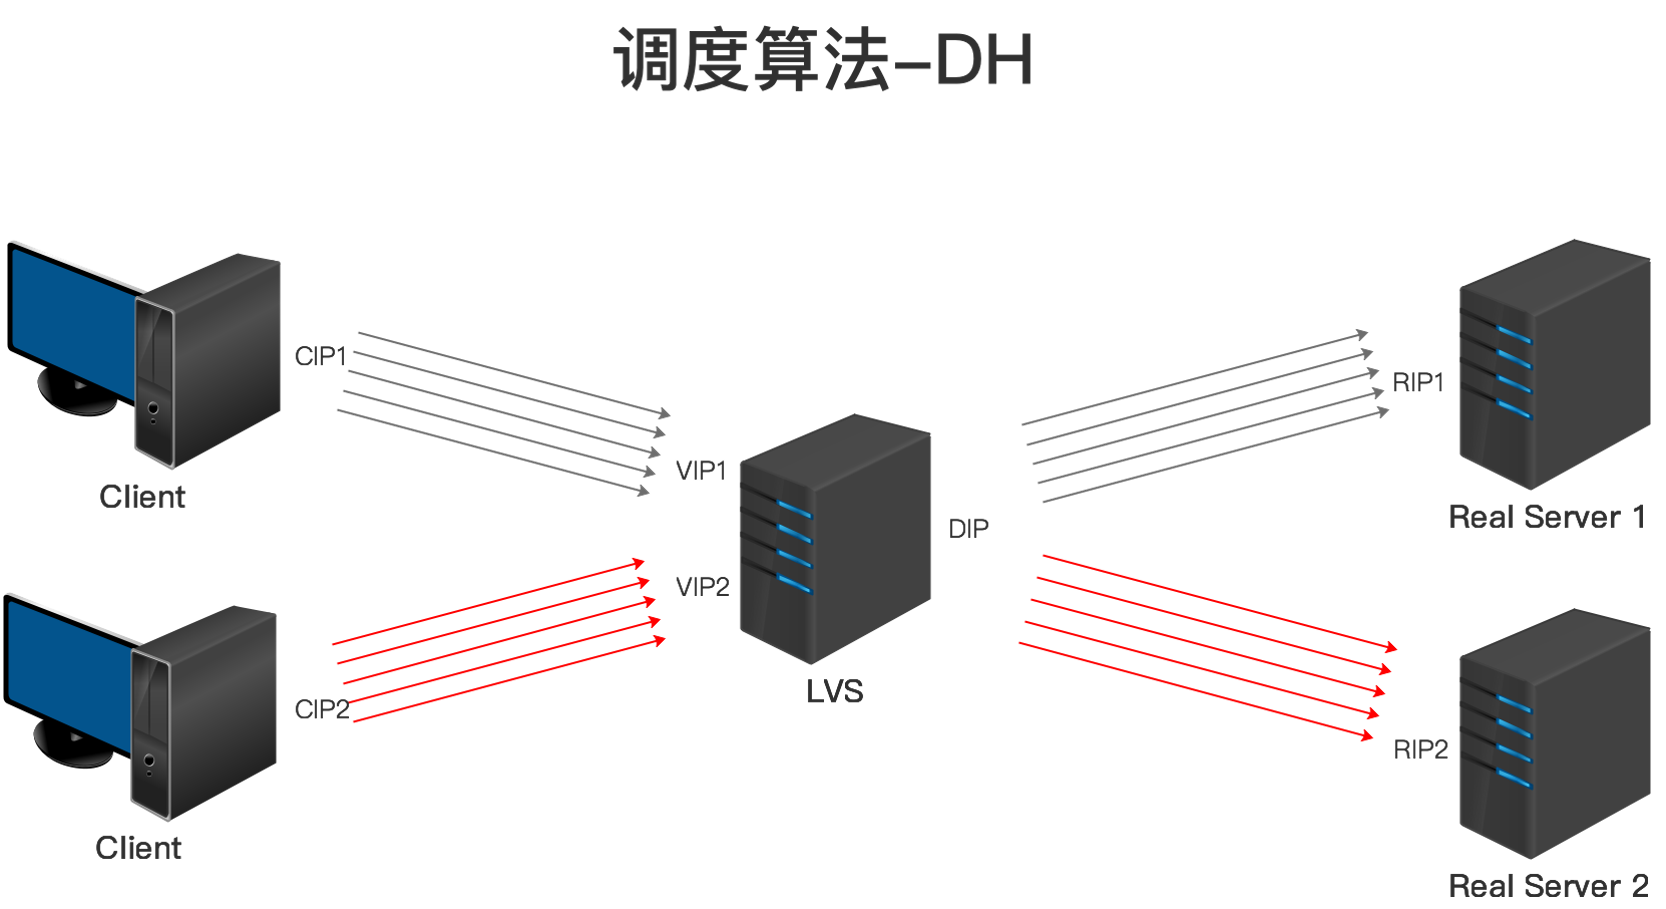 LVS调度算法-DH.png